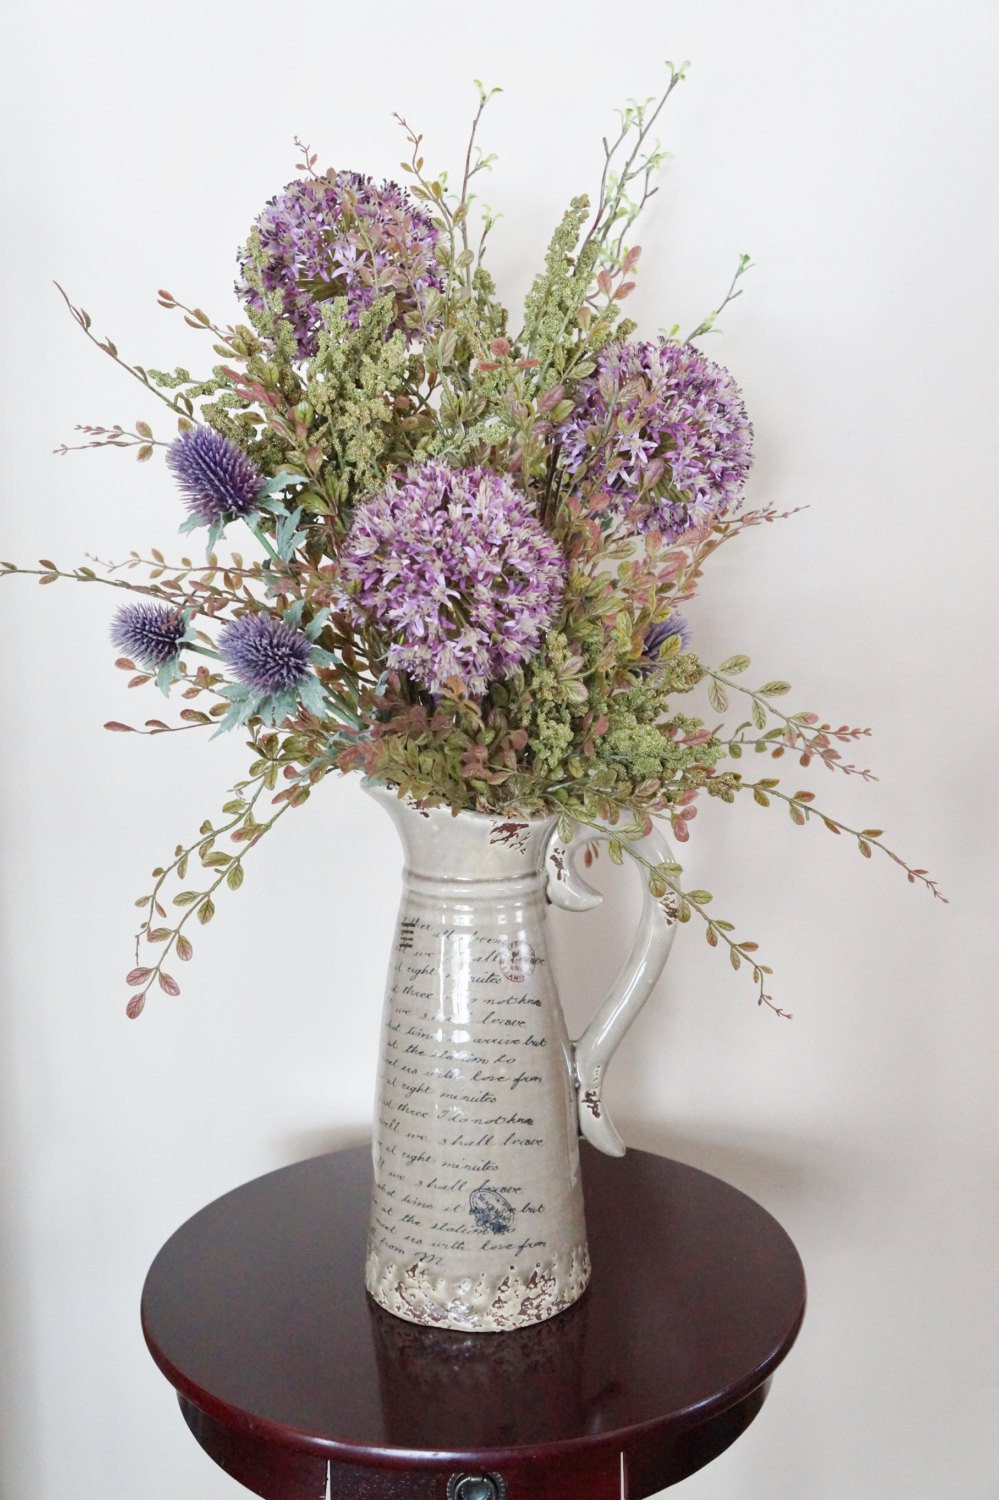 Flower Arrangements for Home Decor Inspirational Flower Arrangement Home Decor Allium Rustic Arrangement